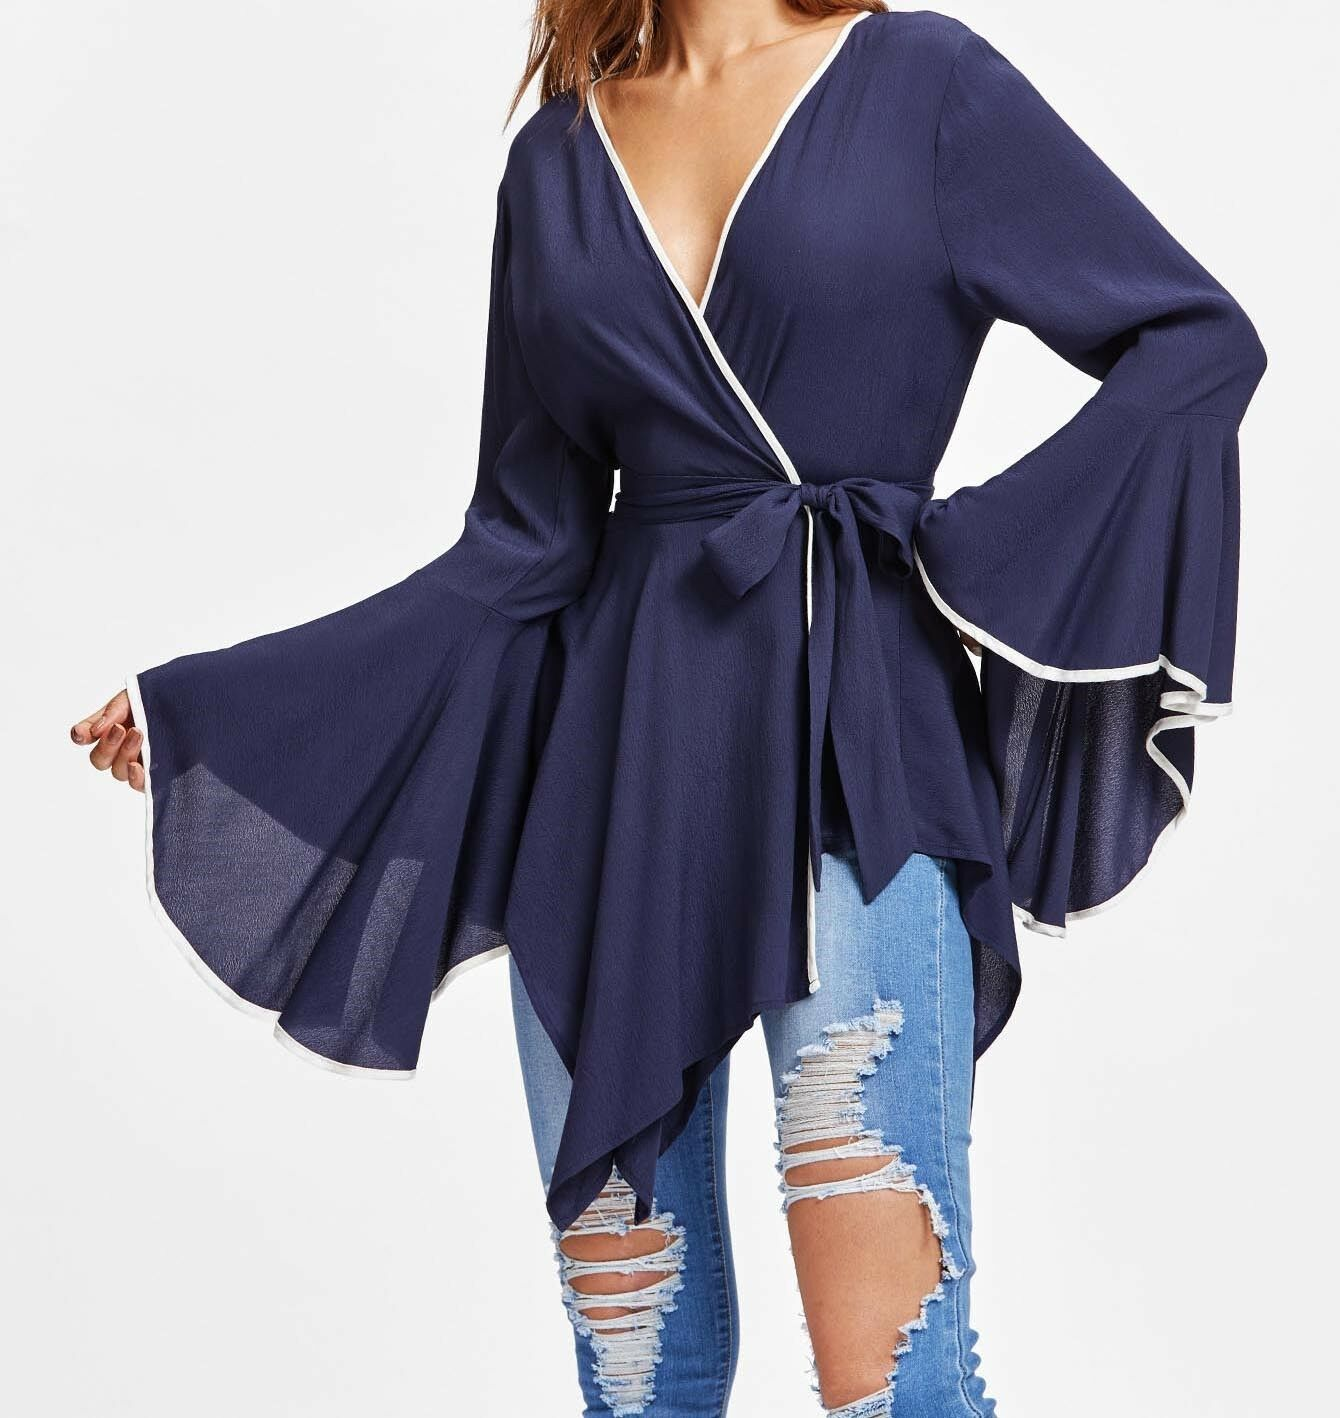 damen Navy Shirt Ruffle Blouse Tops Flounce Blouse Clothes